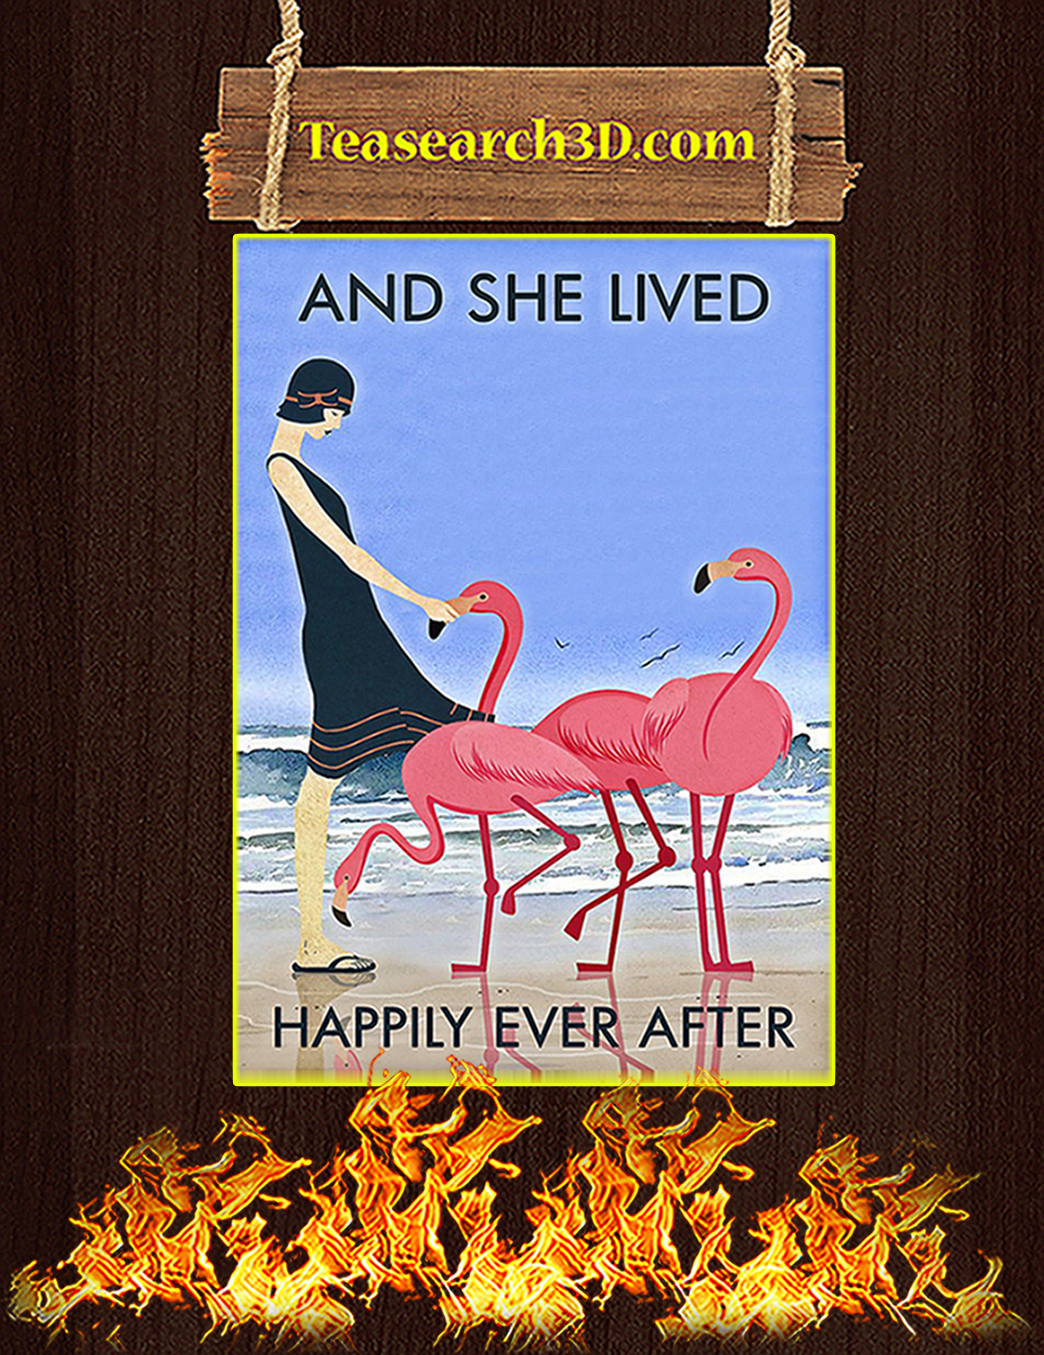 Flamingo And she lived happily ever after poster A1